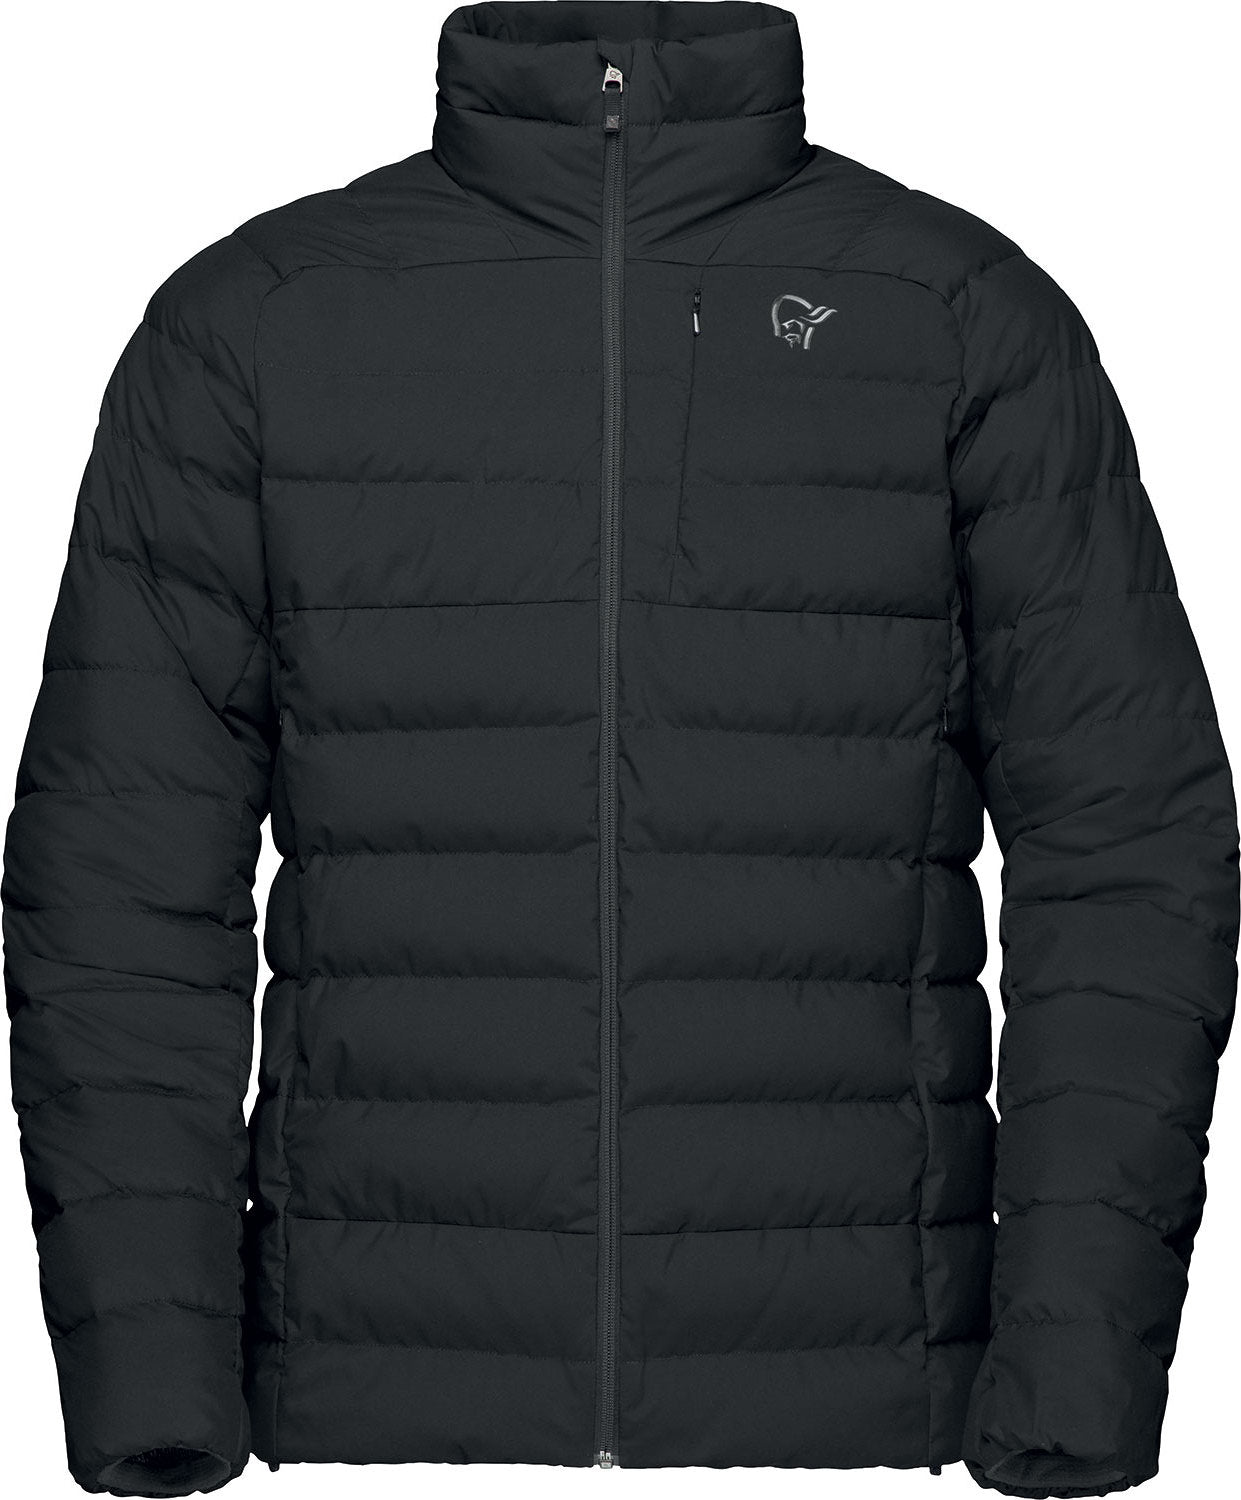 b7dd6722 Norrona Men's Oslo Lightweight Down850 Jacket | Altitude Sports